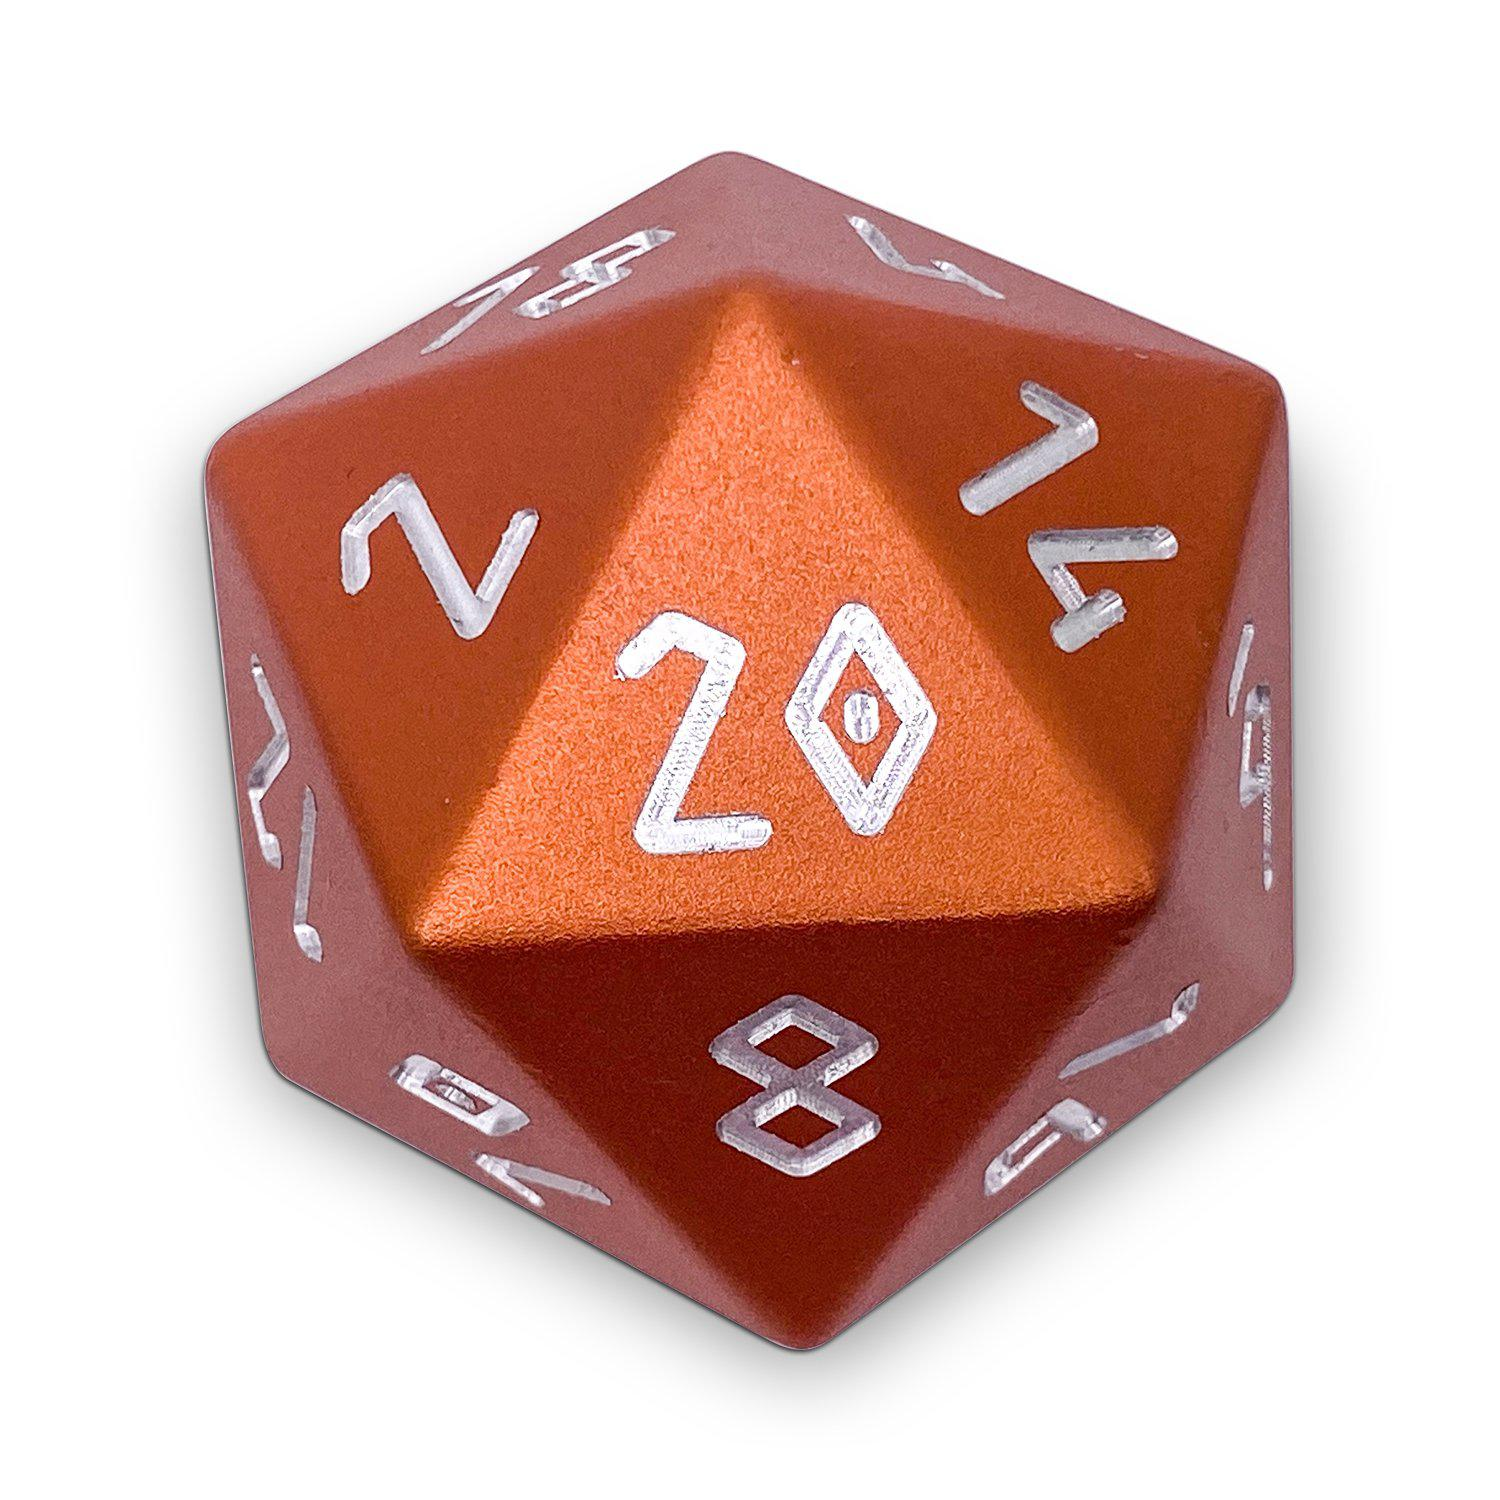 Chromatic Dragon Orange - Boulder® 55mm D20 6063 Aircraft Grade Aluminum Metal Die